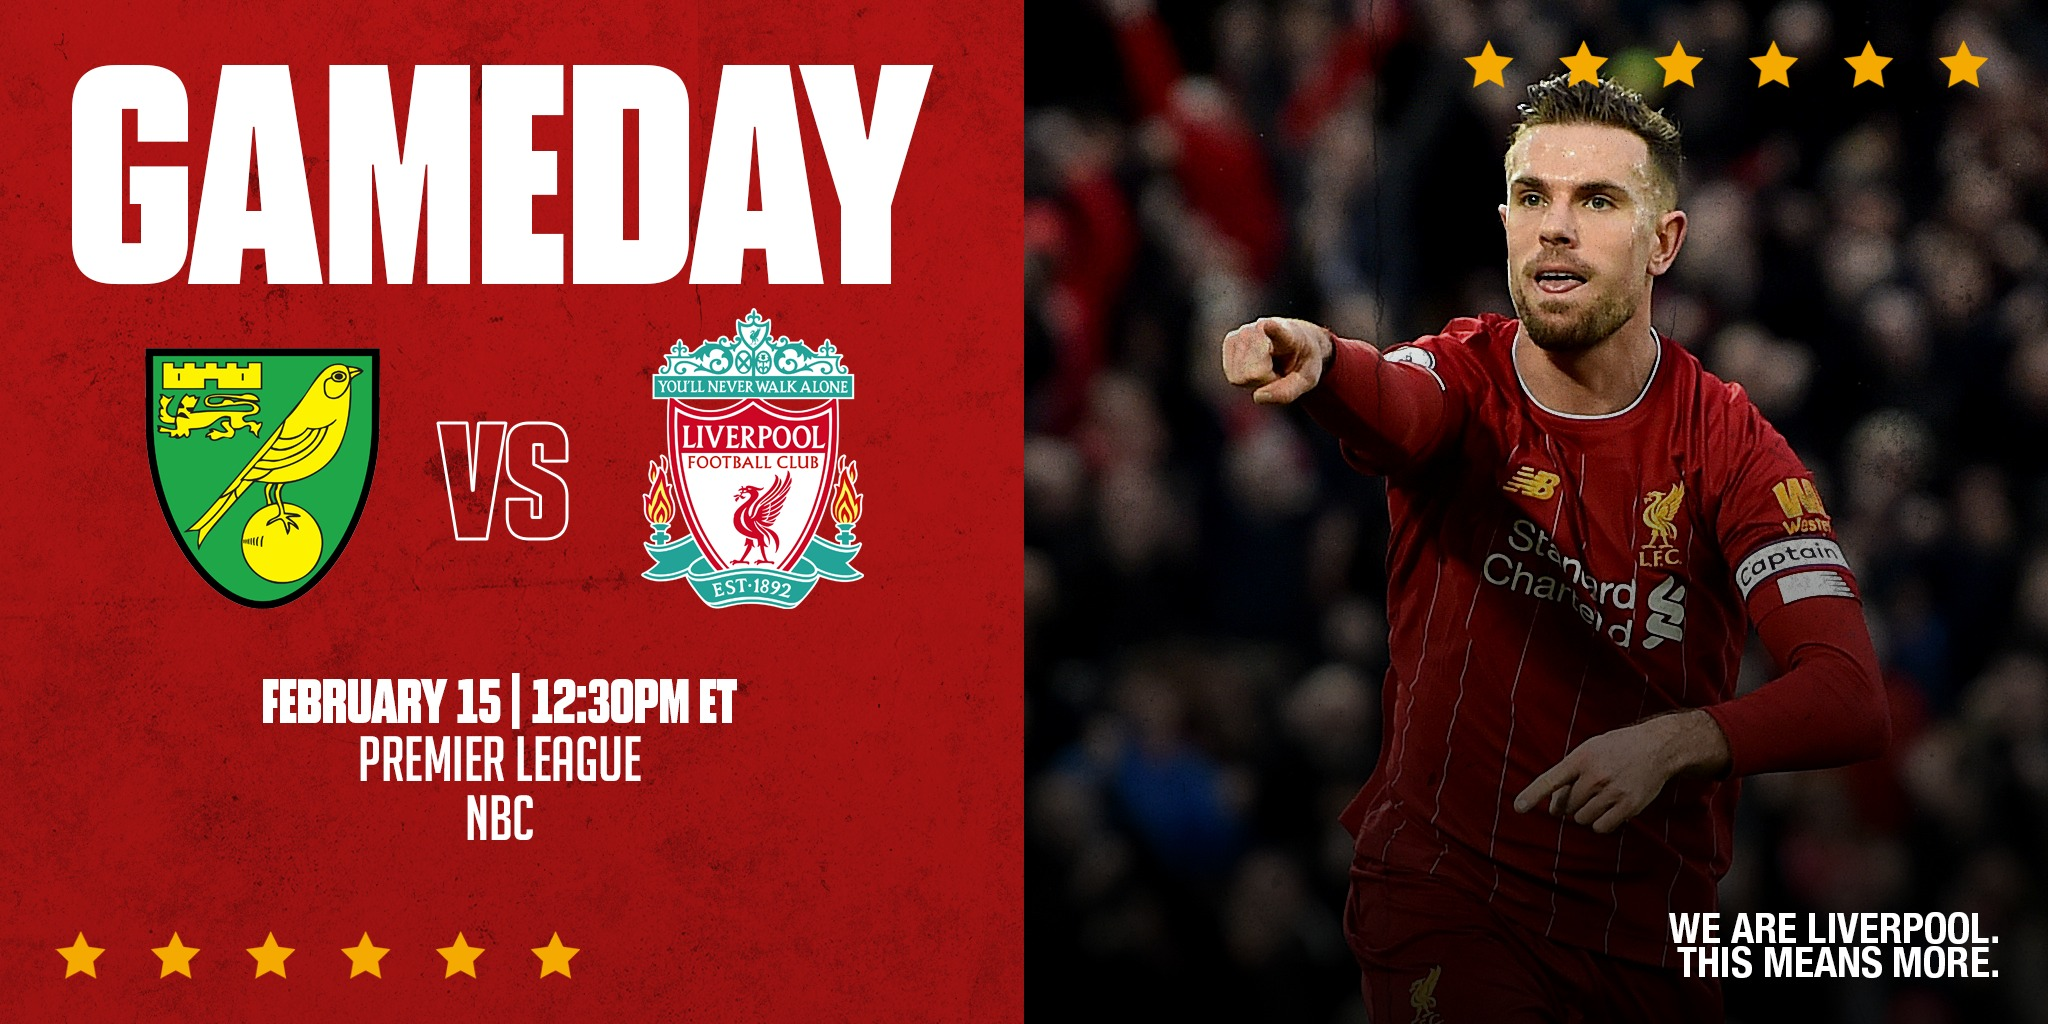 We've been waiting almost two weeks to say this...  🗣 IT'S GAMEDAY, REDS!  #NORLIV https://t.co/frb1vWfaXN